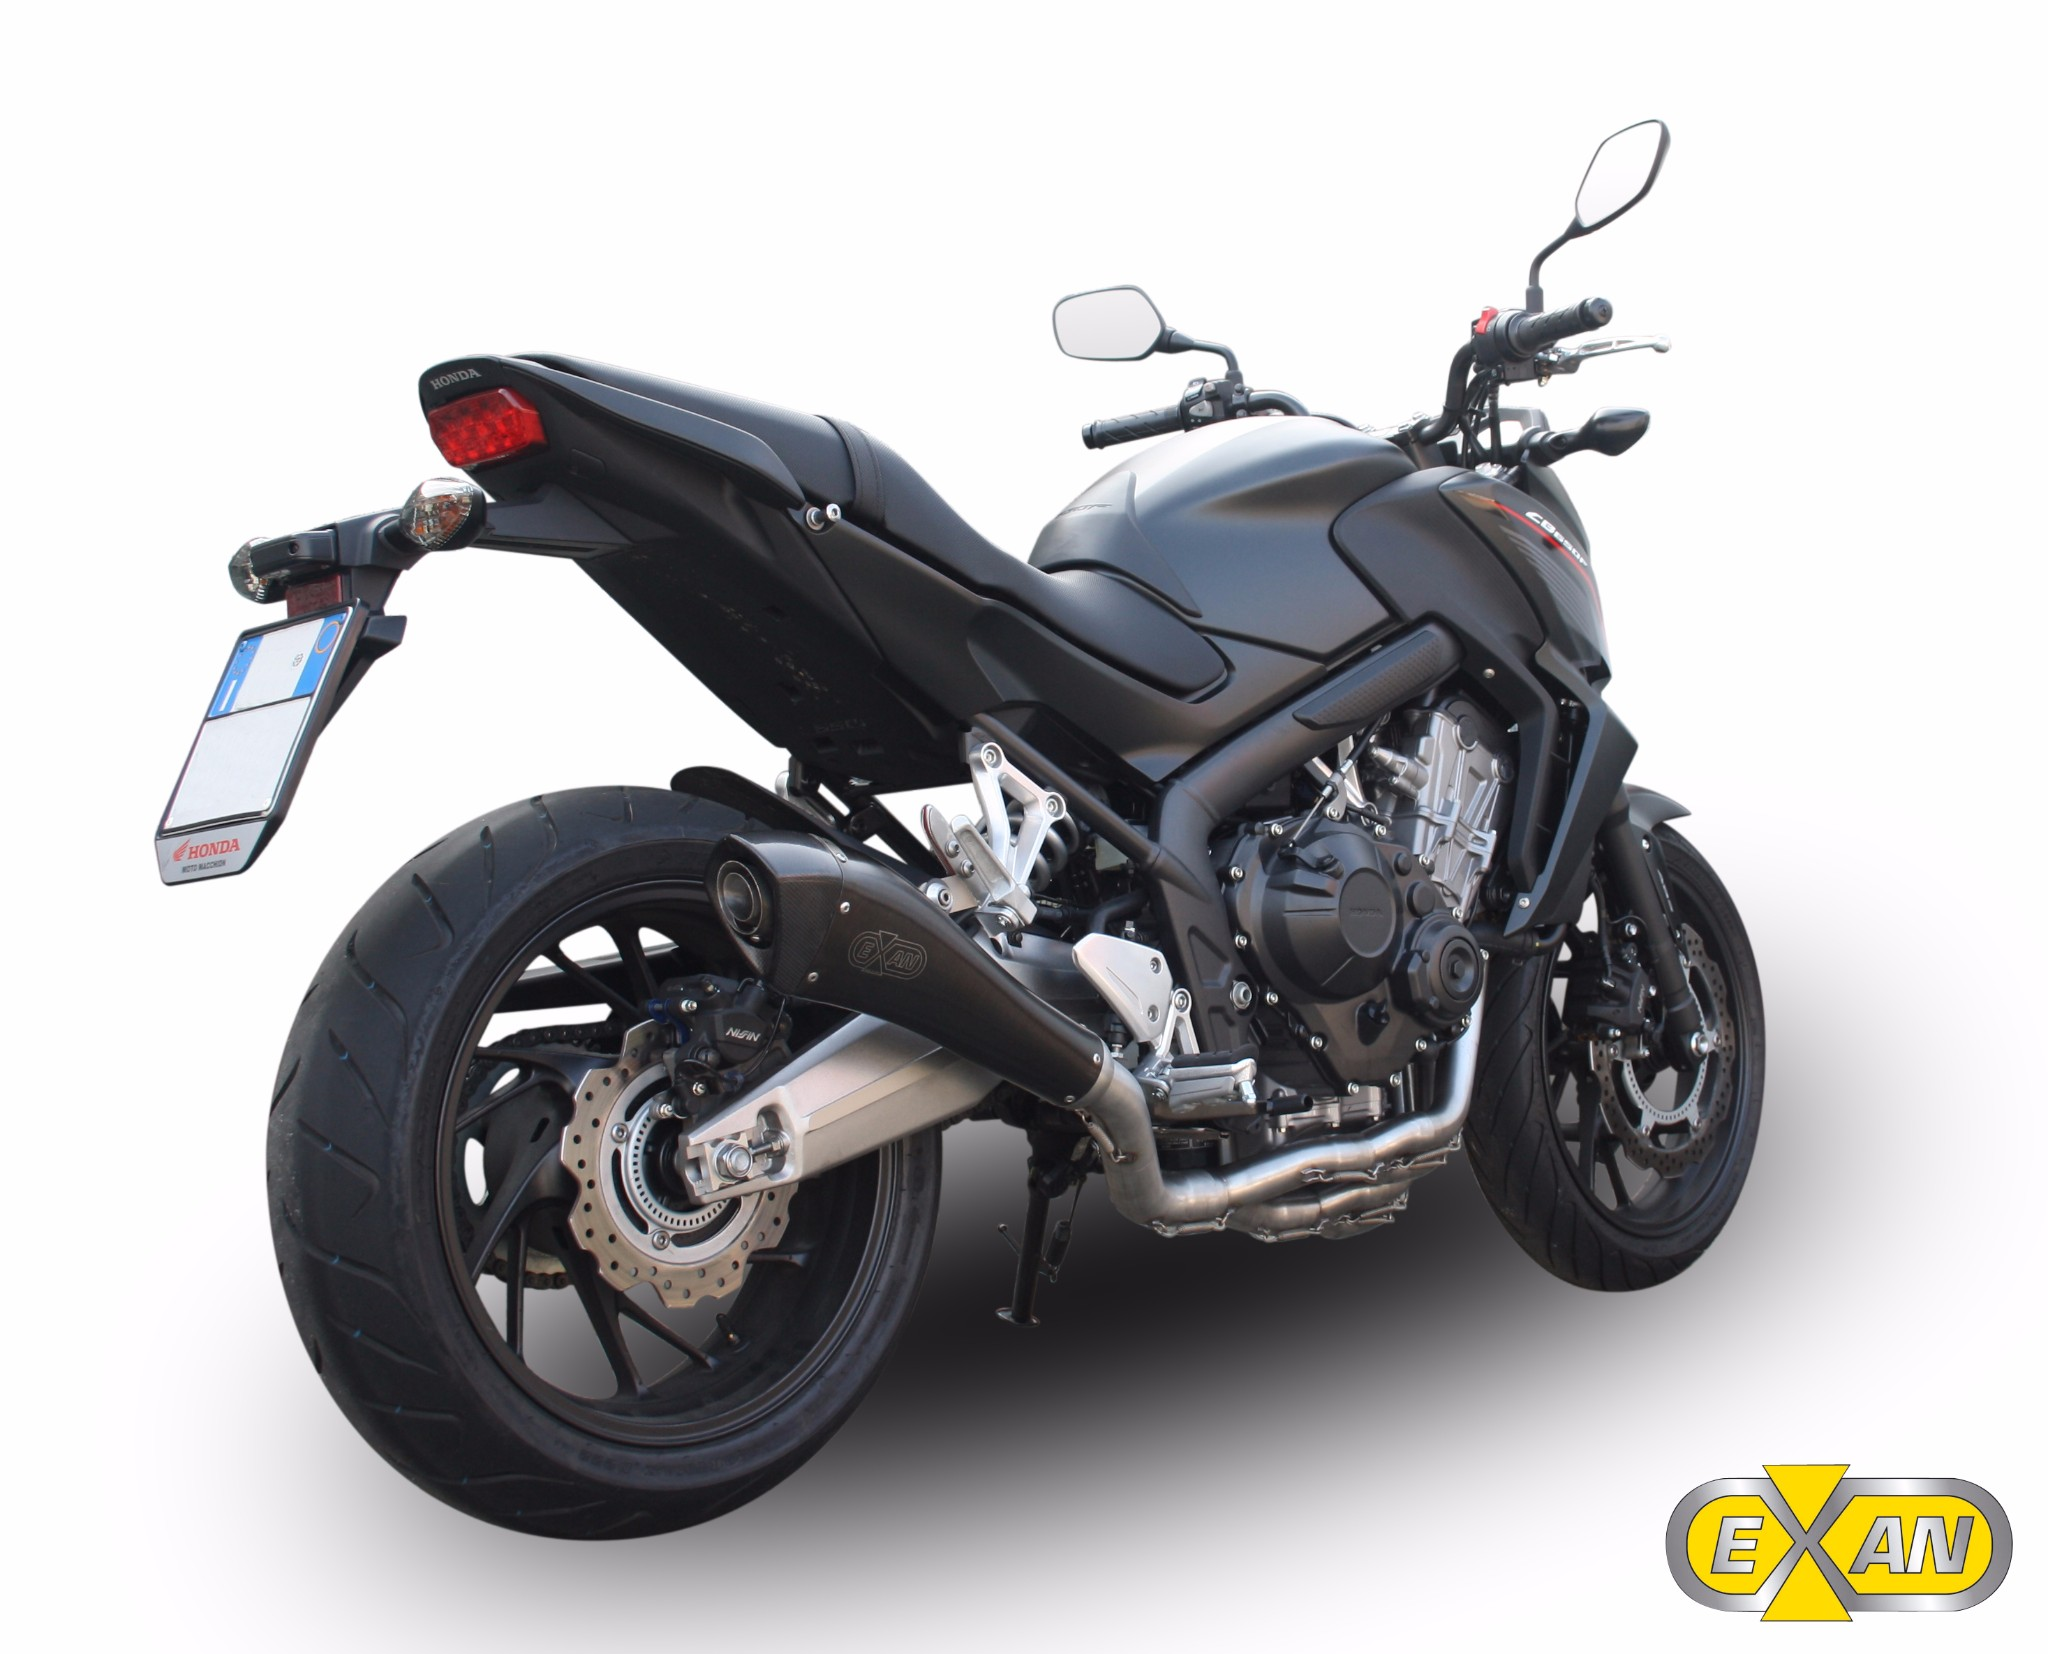 honda cb 650 f 2015 2016 exan x black evo exhaust full. Black Bedroom Furniture Sets. Home Design Ideas